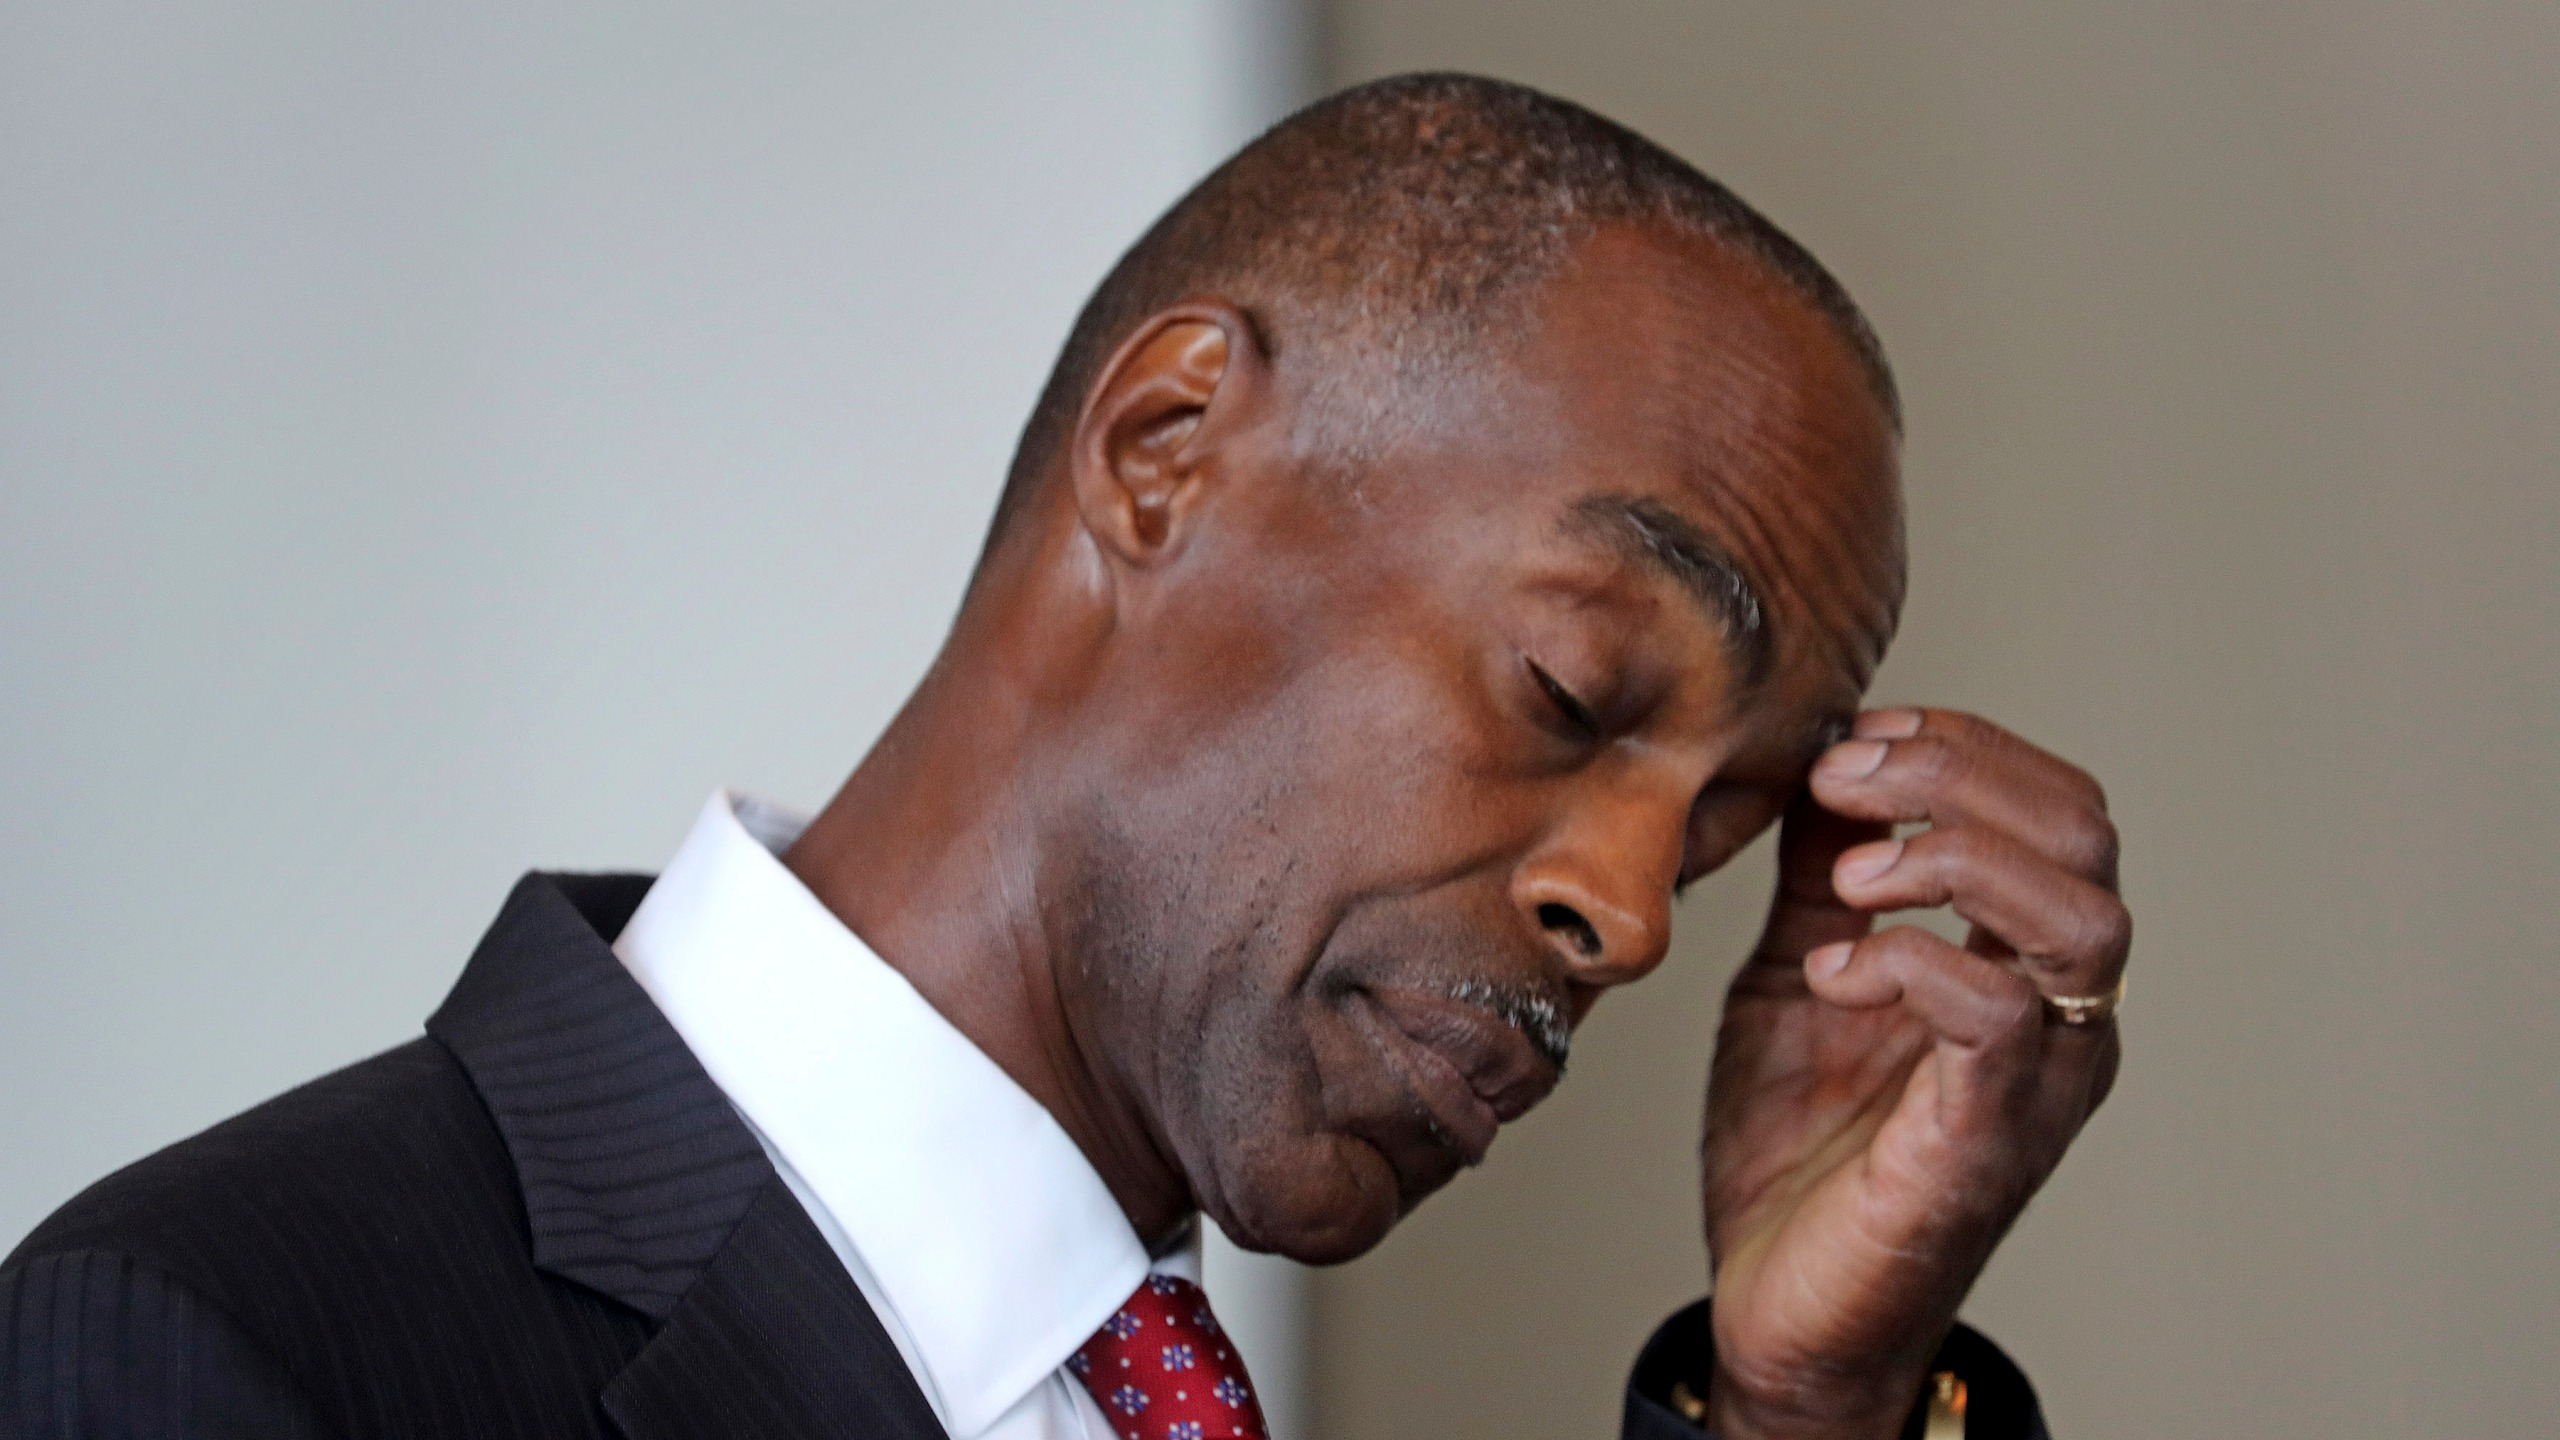 In this Thursday, Aug. 15, 2019, file photo, Broward Schools Superintendent Robert Runcie addresses the Marjory Stoneman Douglas Public Safety Commission, in Sunrise, Fla. Runcie was arrested Wednesday, April 21, 2021, by the Florida Department of Law Enforcement. An indictment says Runcie lied while testifying three weeks ago before a grand jury investigating circumstances surrounding the Feb. 14, 2018, shooting at Marjory Stoneman Douglas High School. (Susan Stocker/South Florida Sun-Sentinel via AP, File)